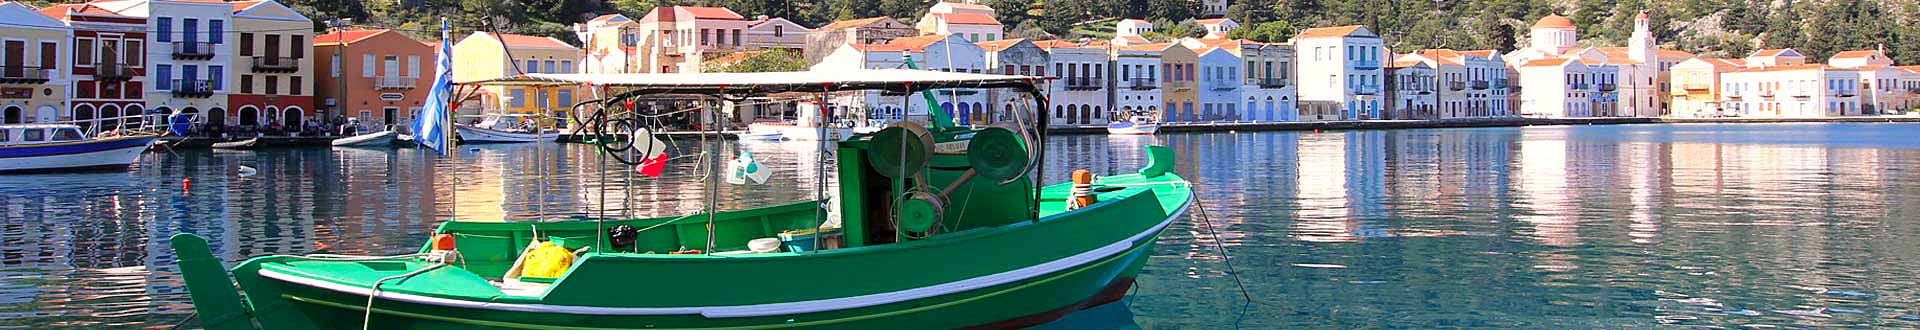 Apartments to let kastelorizo